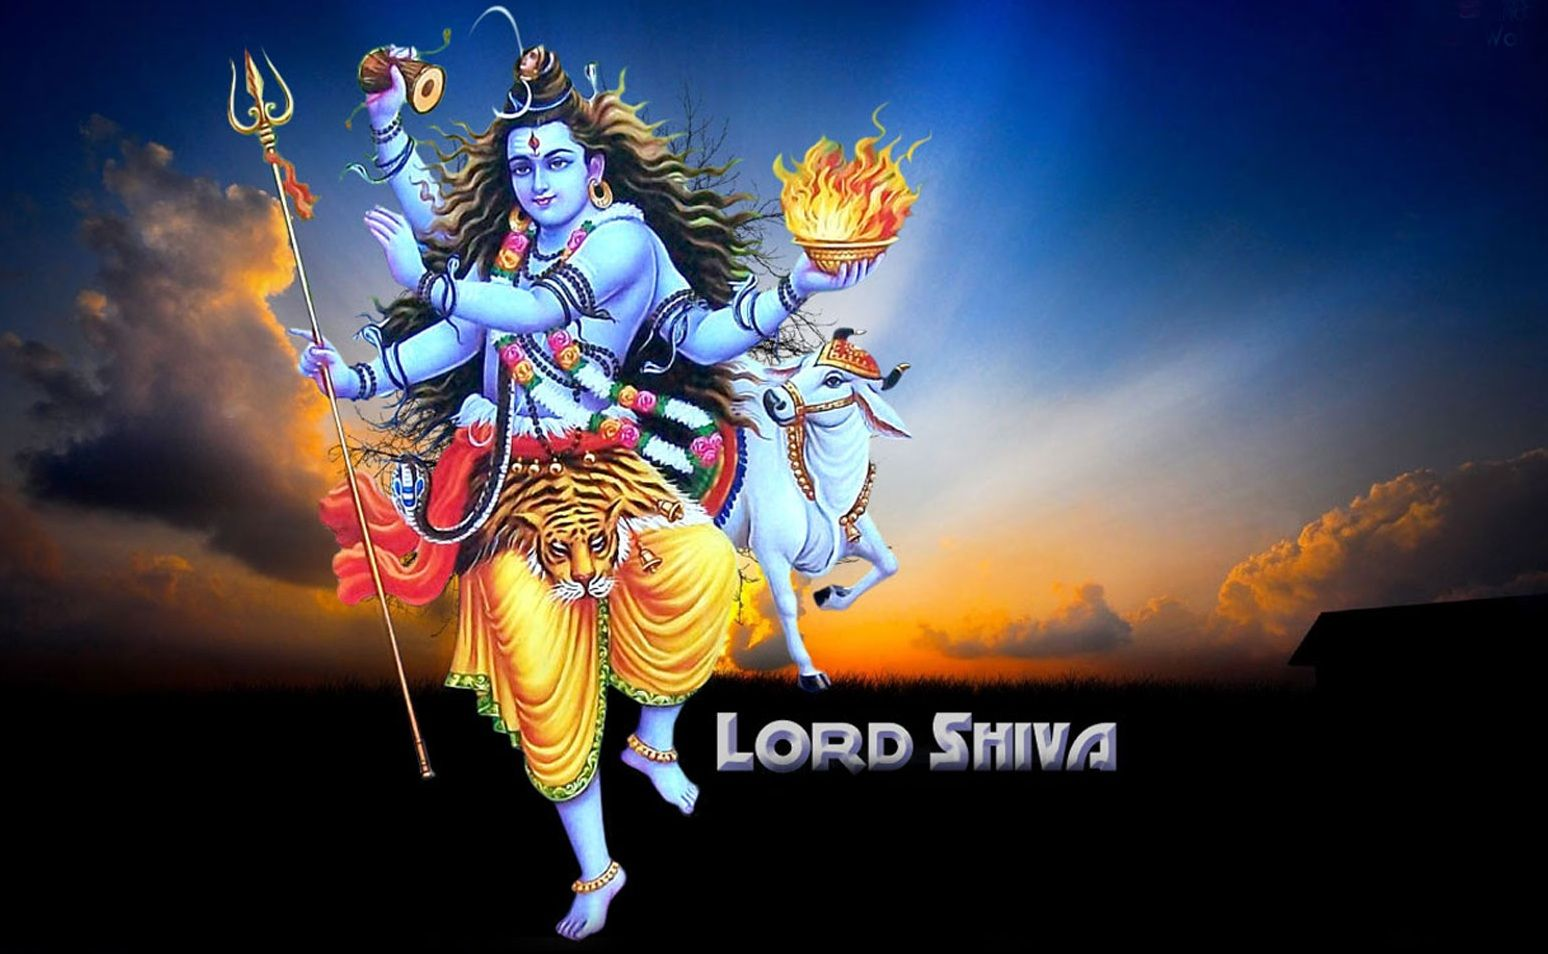 1548x954 835+ Lord Shiva Images [Wallpapers] & God Shiva Photos in HD Quality